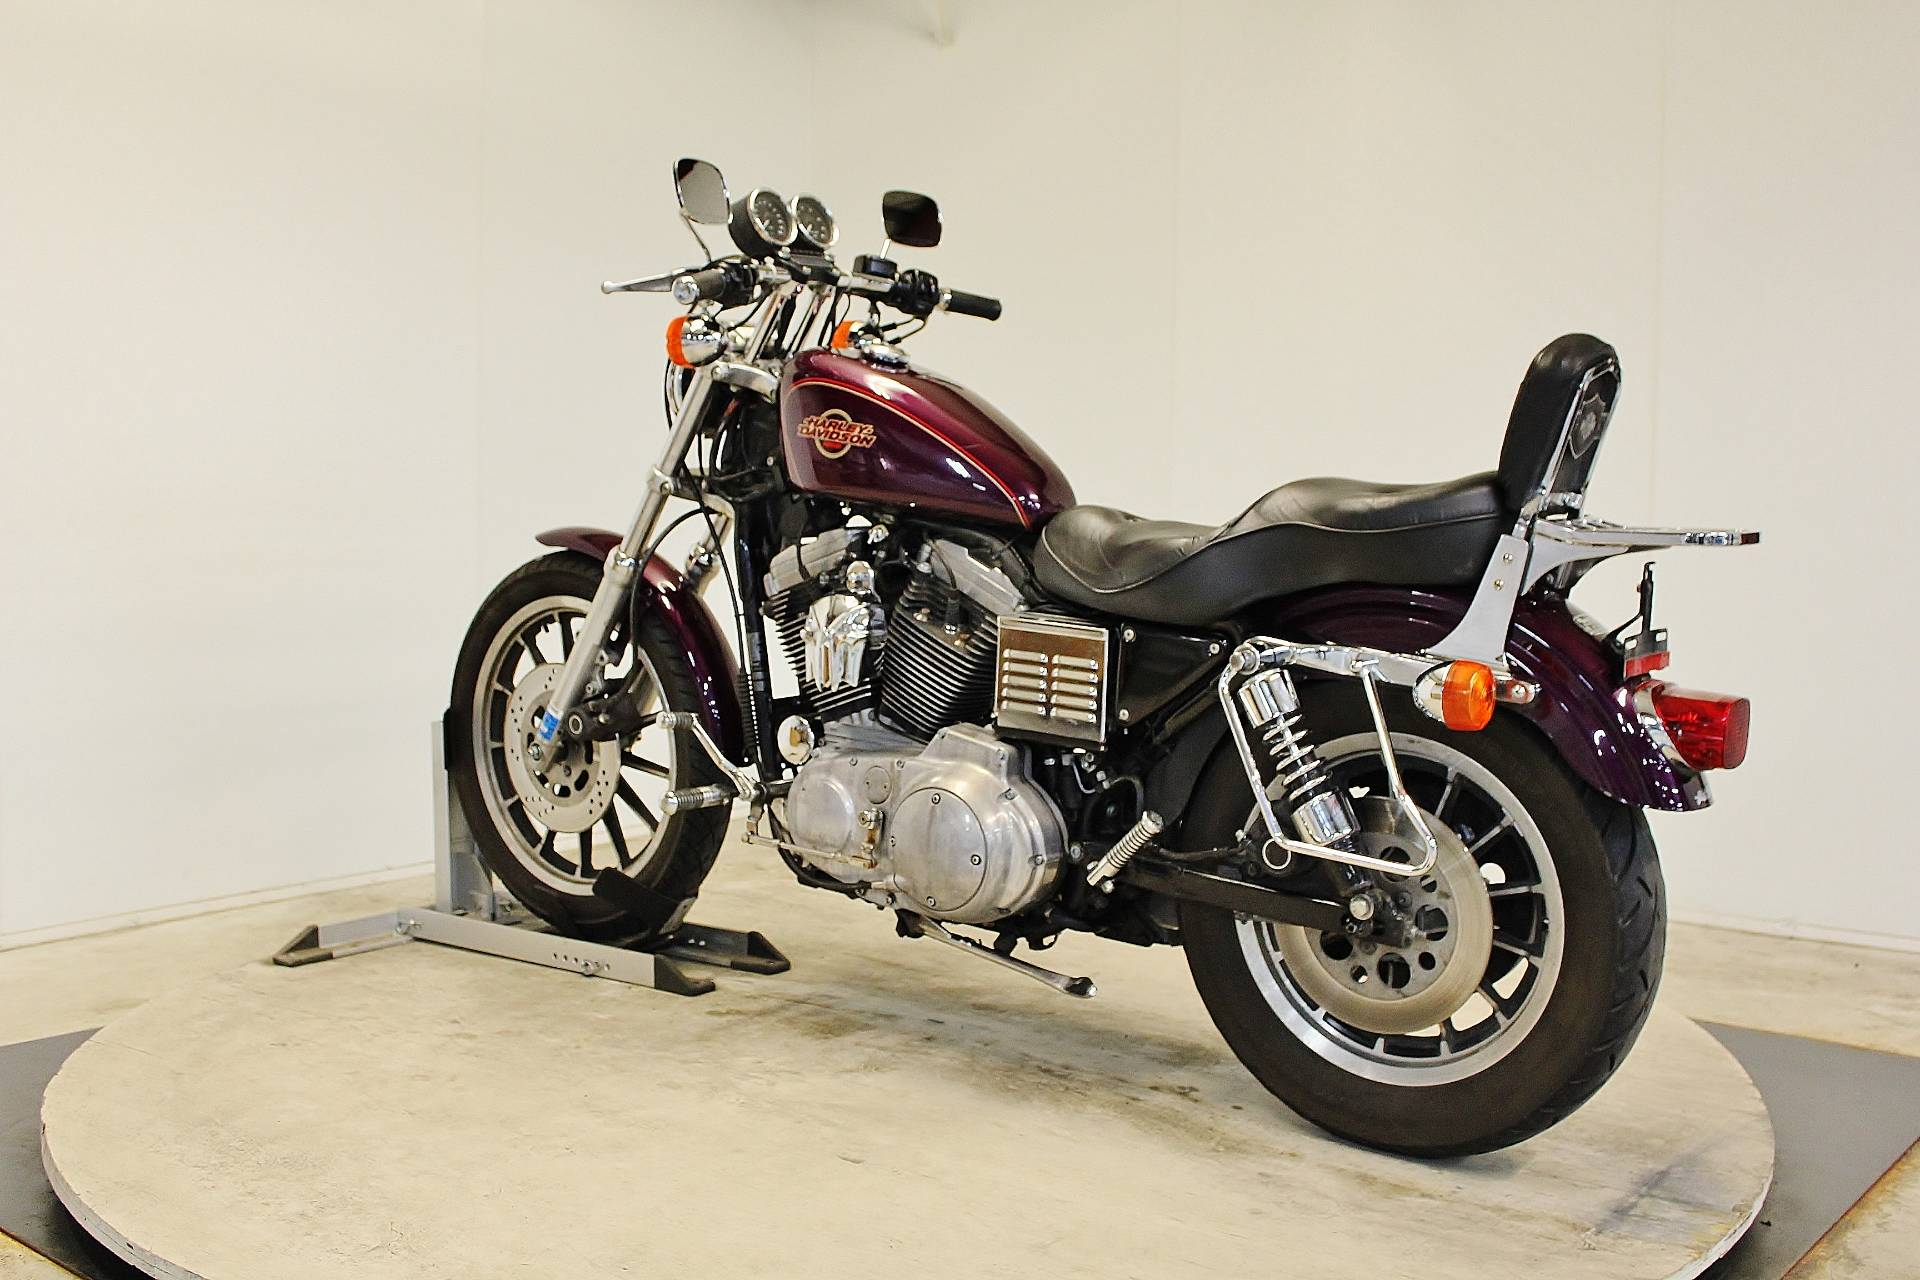 1997 Harley-Davidson XLH 1200 Sportster in Pittsfield, Massachusetts